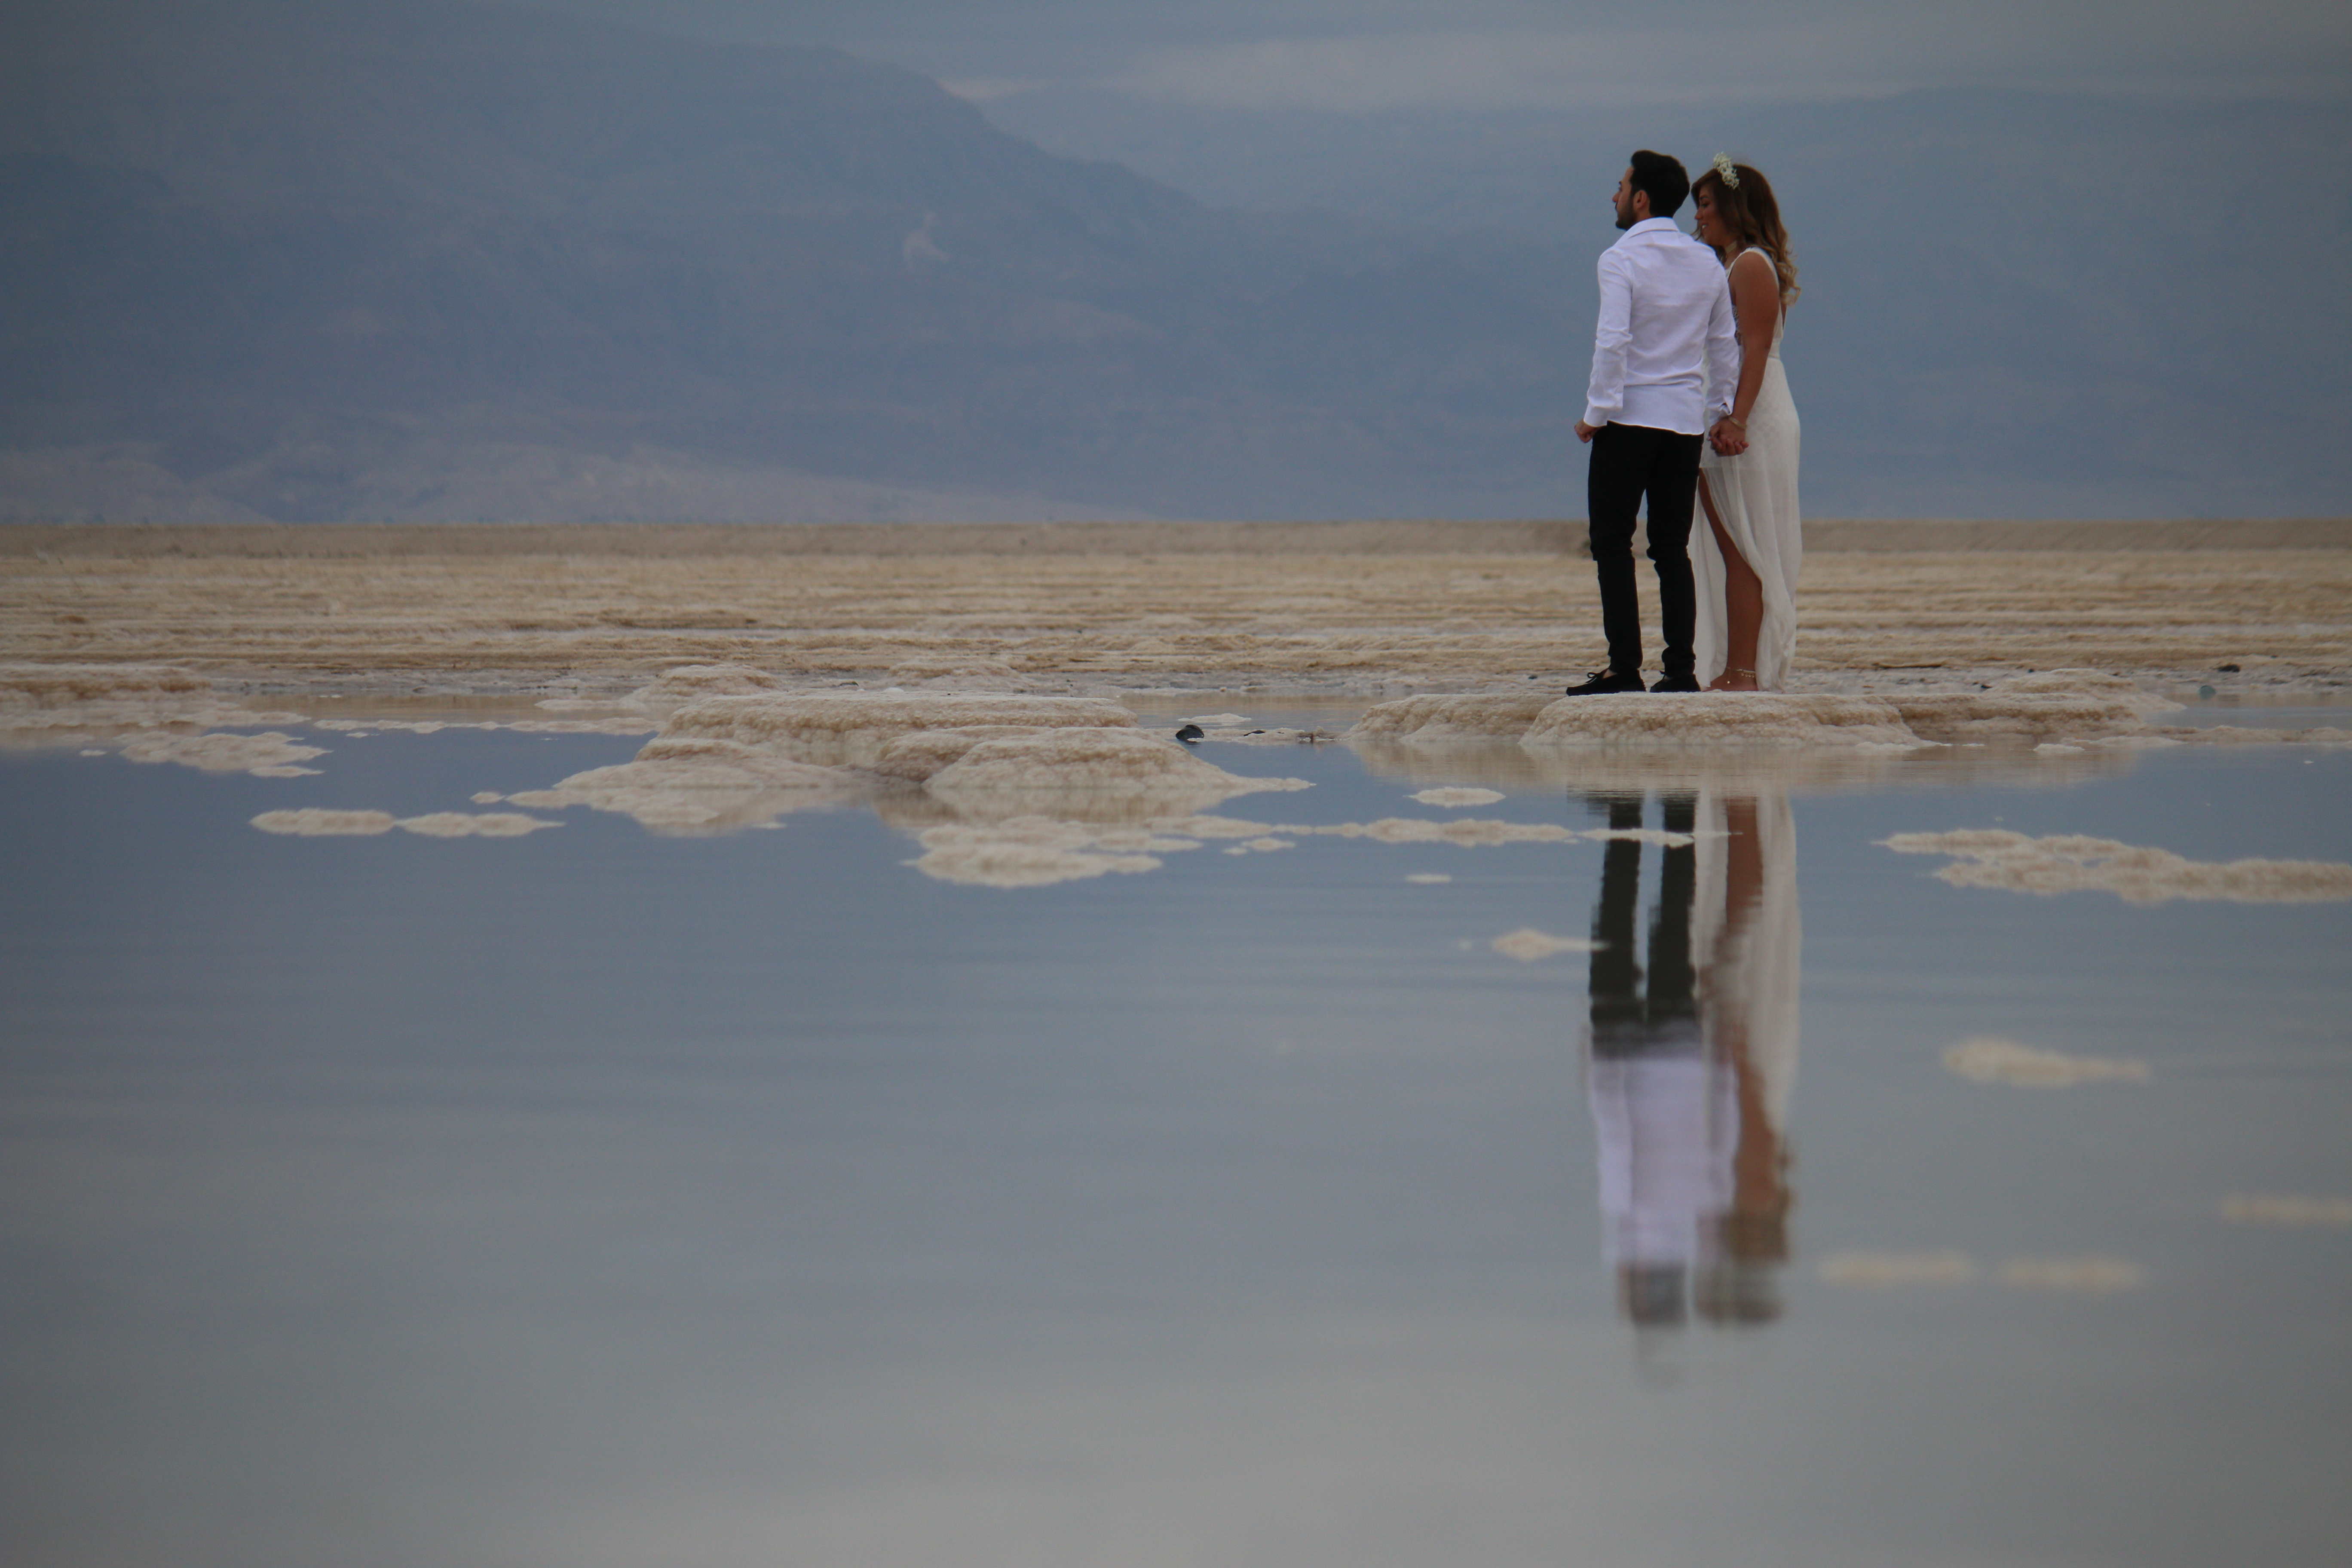 Getting married - Dead sea